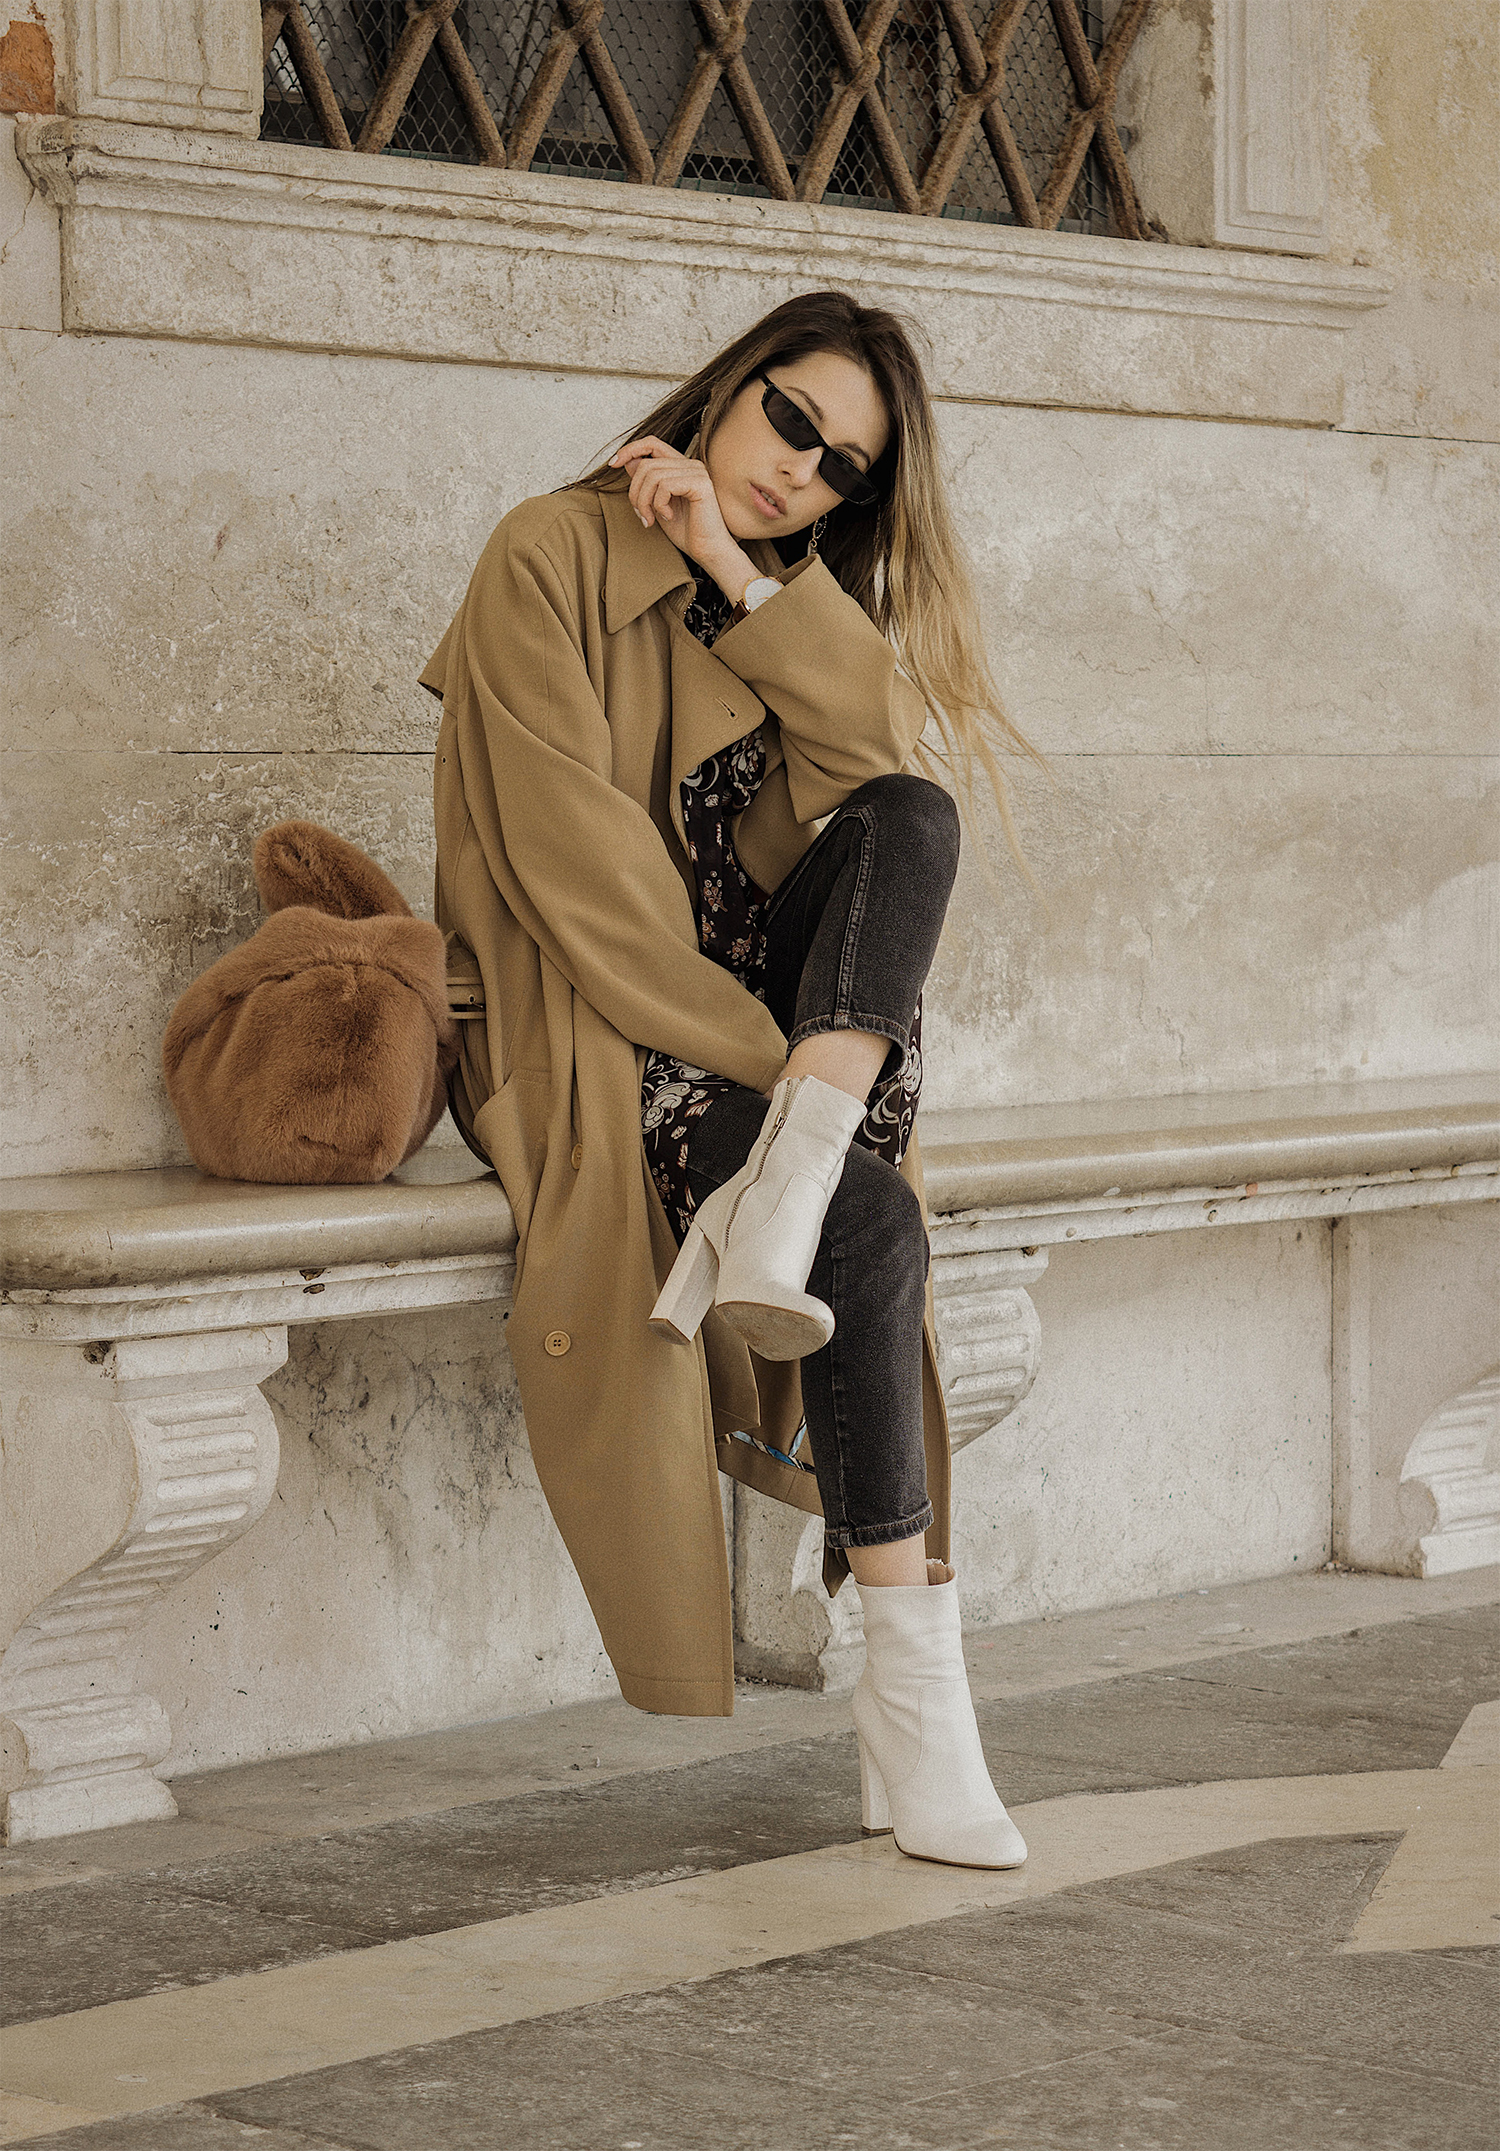 trench_coat_white_boots_dress_with_jeans_venice_italy_fur_bag_fashion_lenajuice_thewhiteocean_03